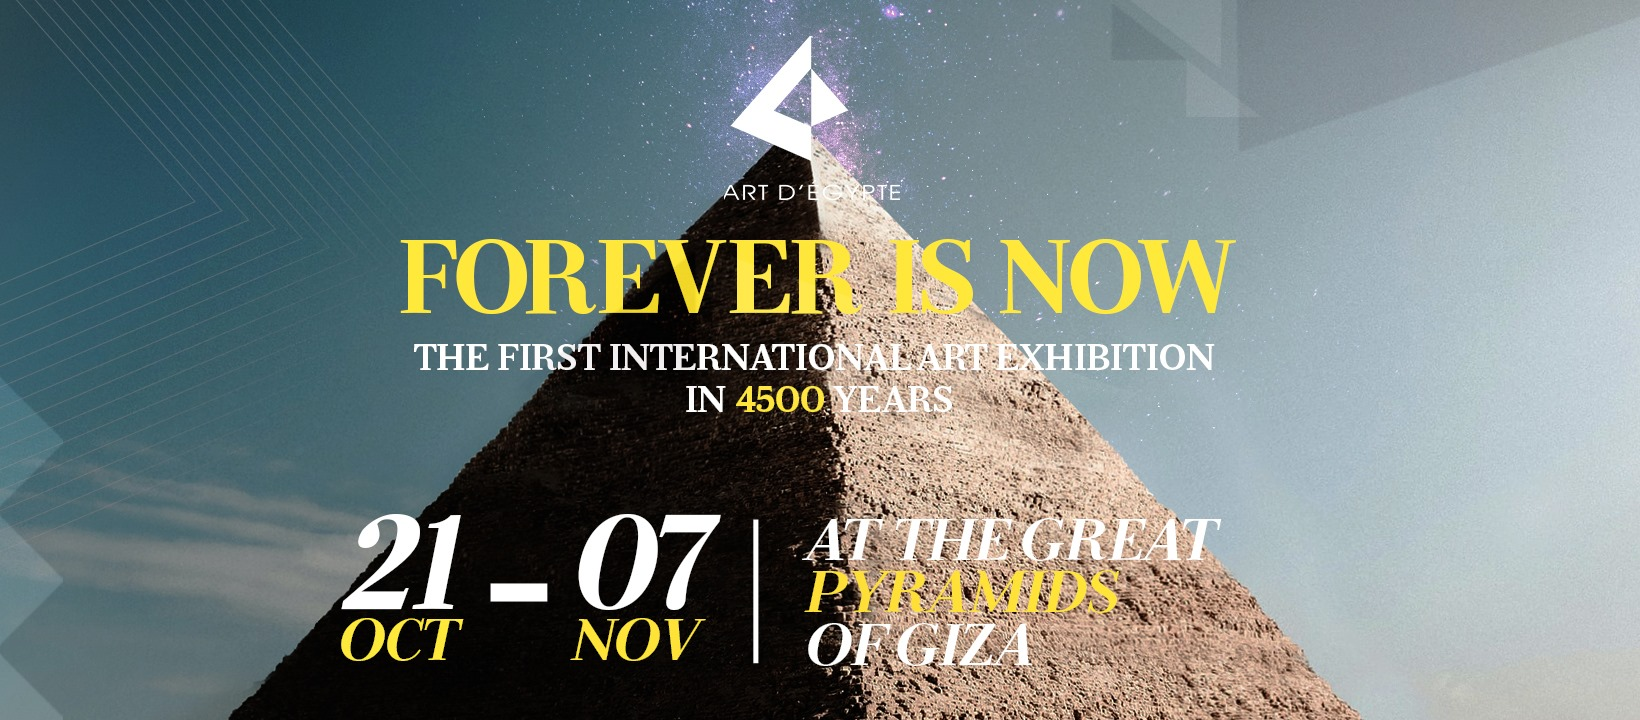 """""""Forever Is Now"""": Egypt's First Contemporary Art Exhibition at Giza Pyramids in 4500 Years"""